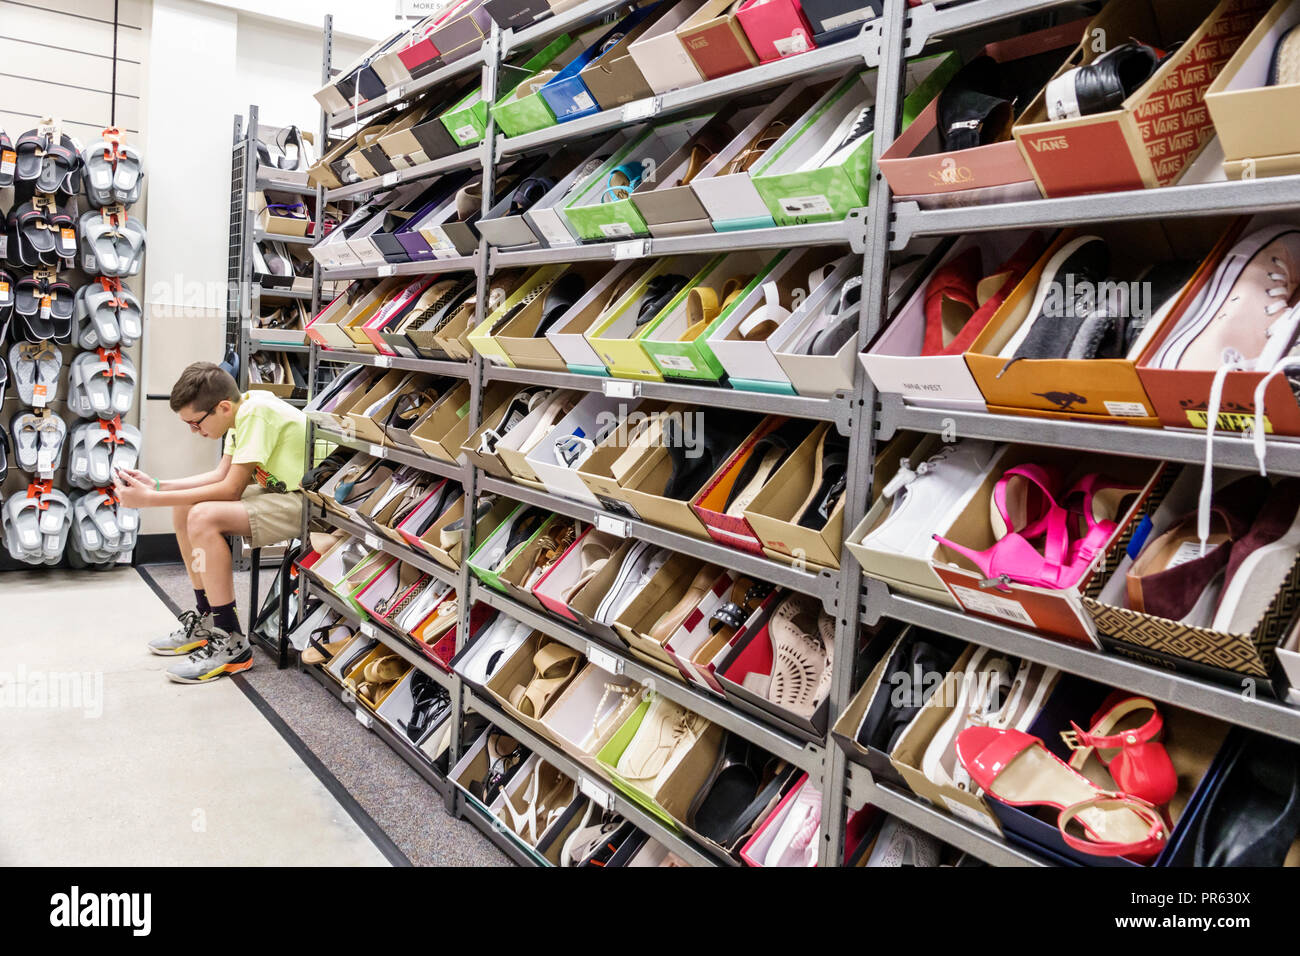 https www alamy com florida miami kendall the palms at town country mall nordstrom rack inside interior shopping shopper shoppers shop shops market markets market image220795594 html